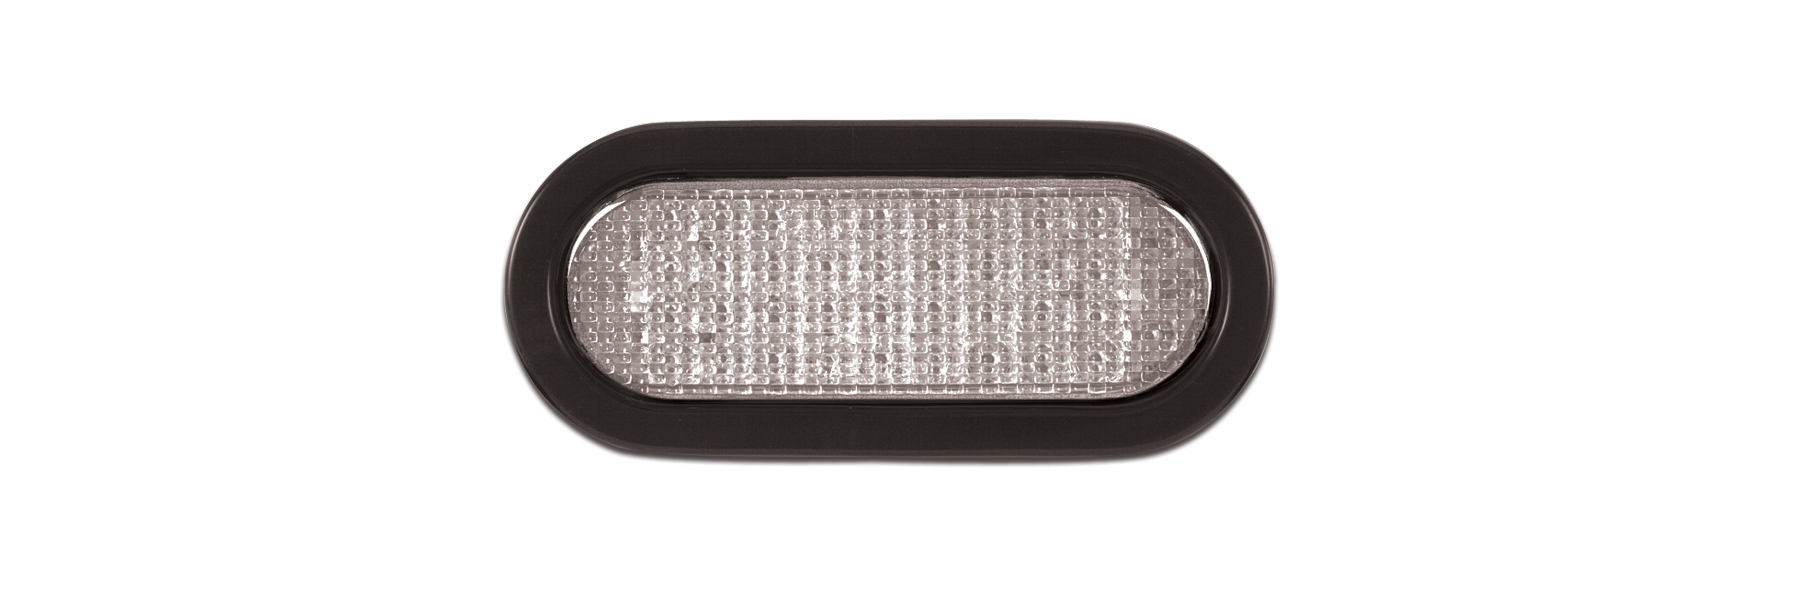 6″ Oval LED Signal Lights Product Image